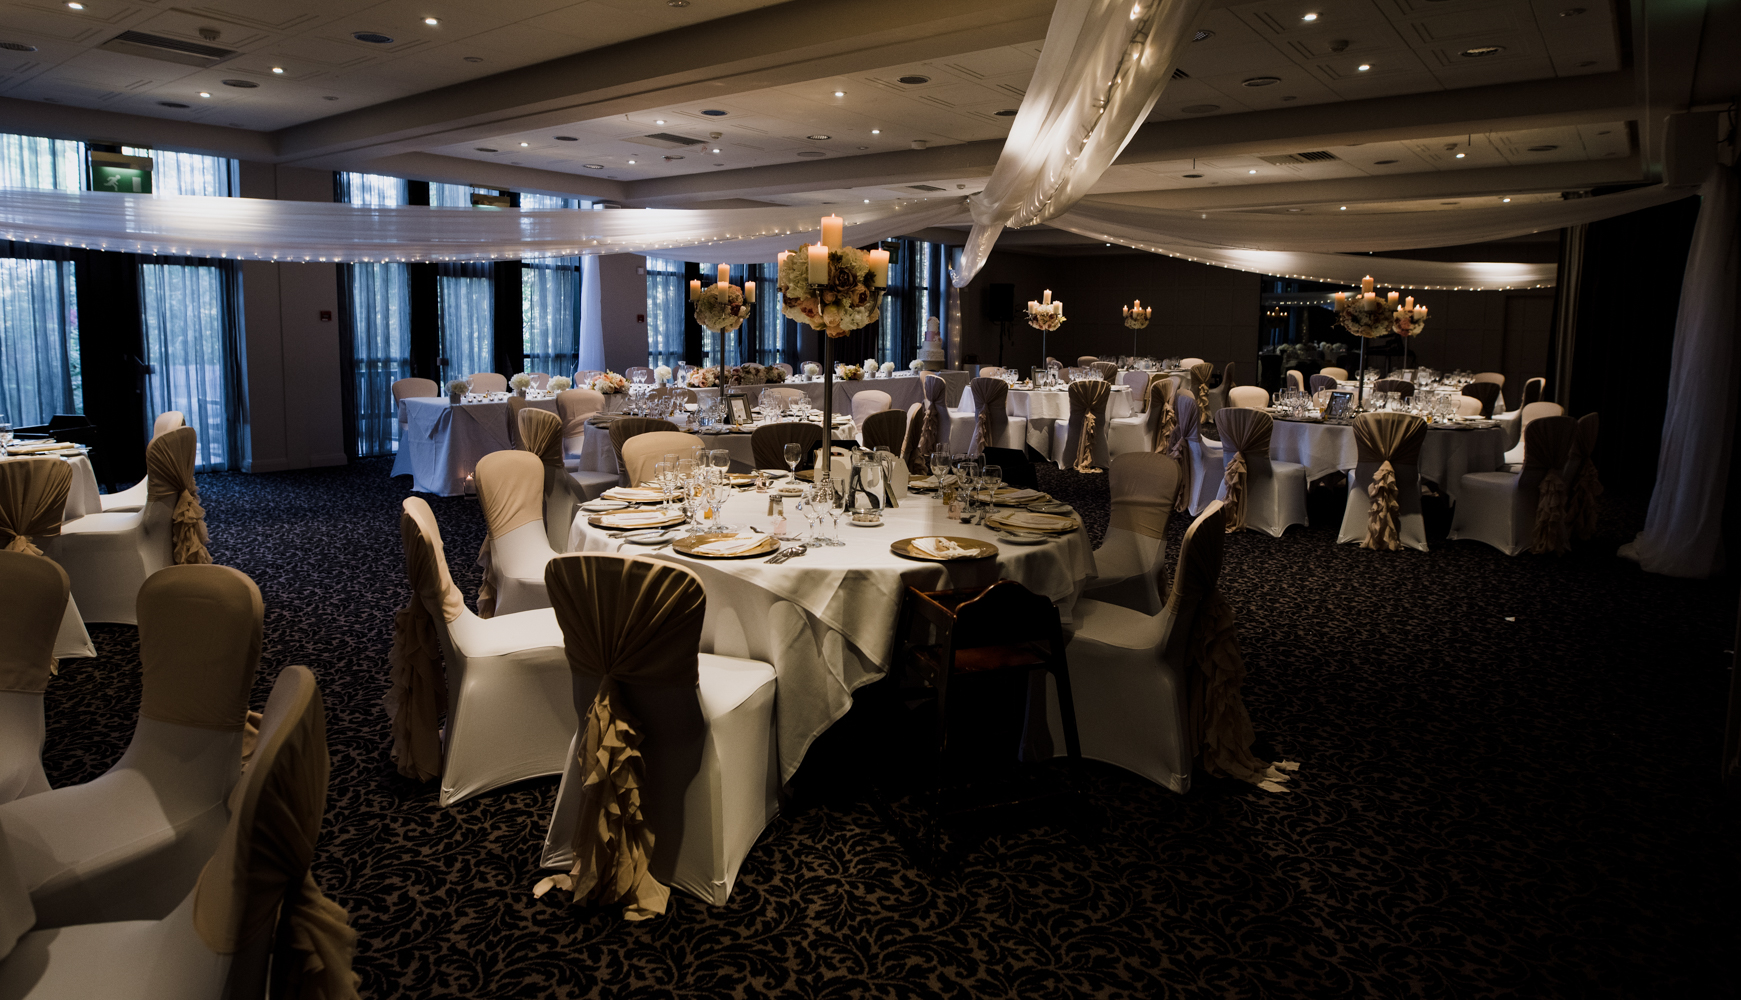 A wide angle image of the wedding reception room all set up for the wedding breakfast